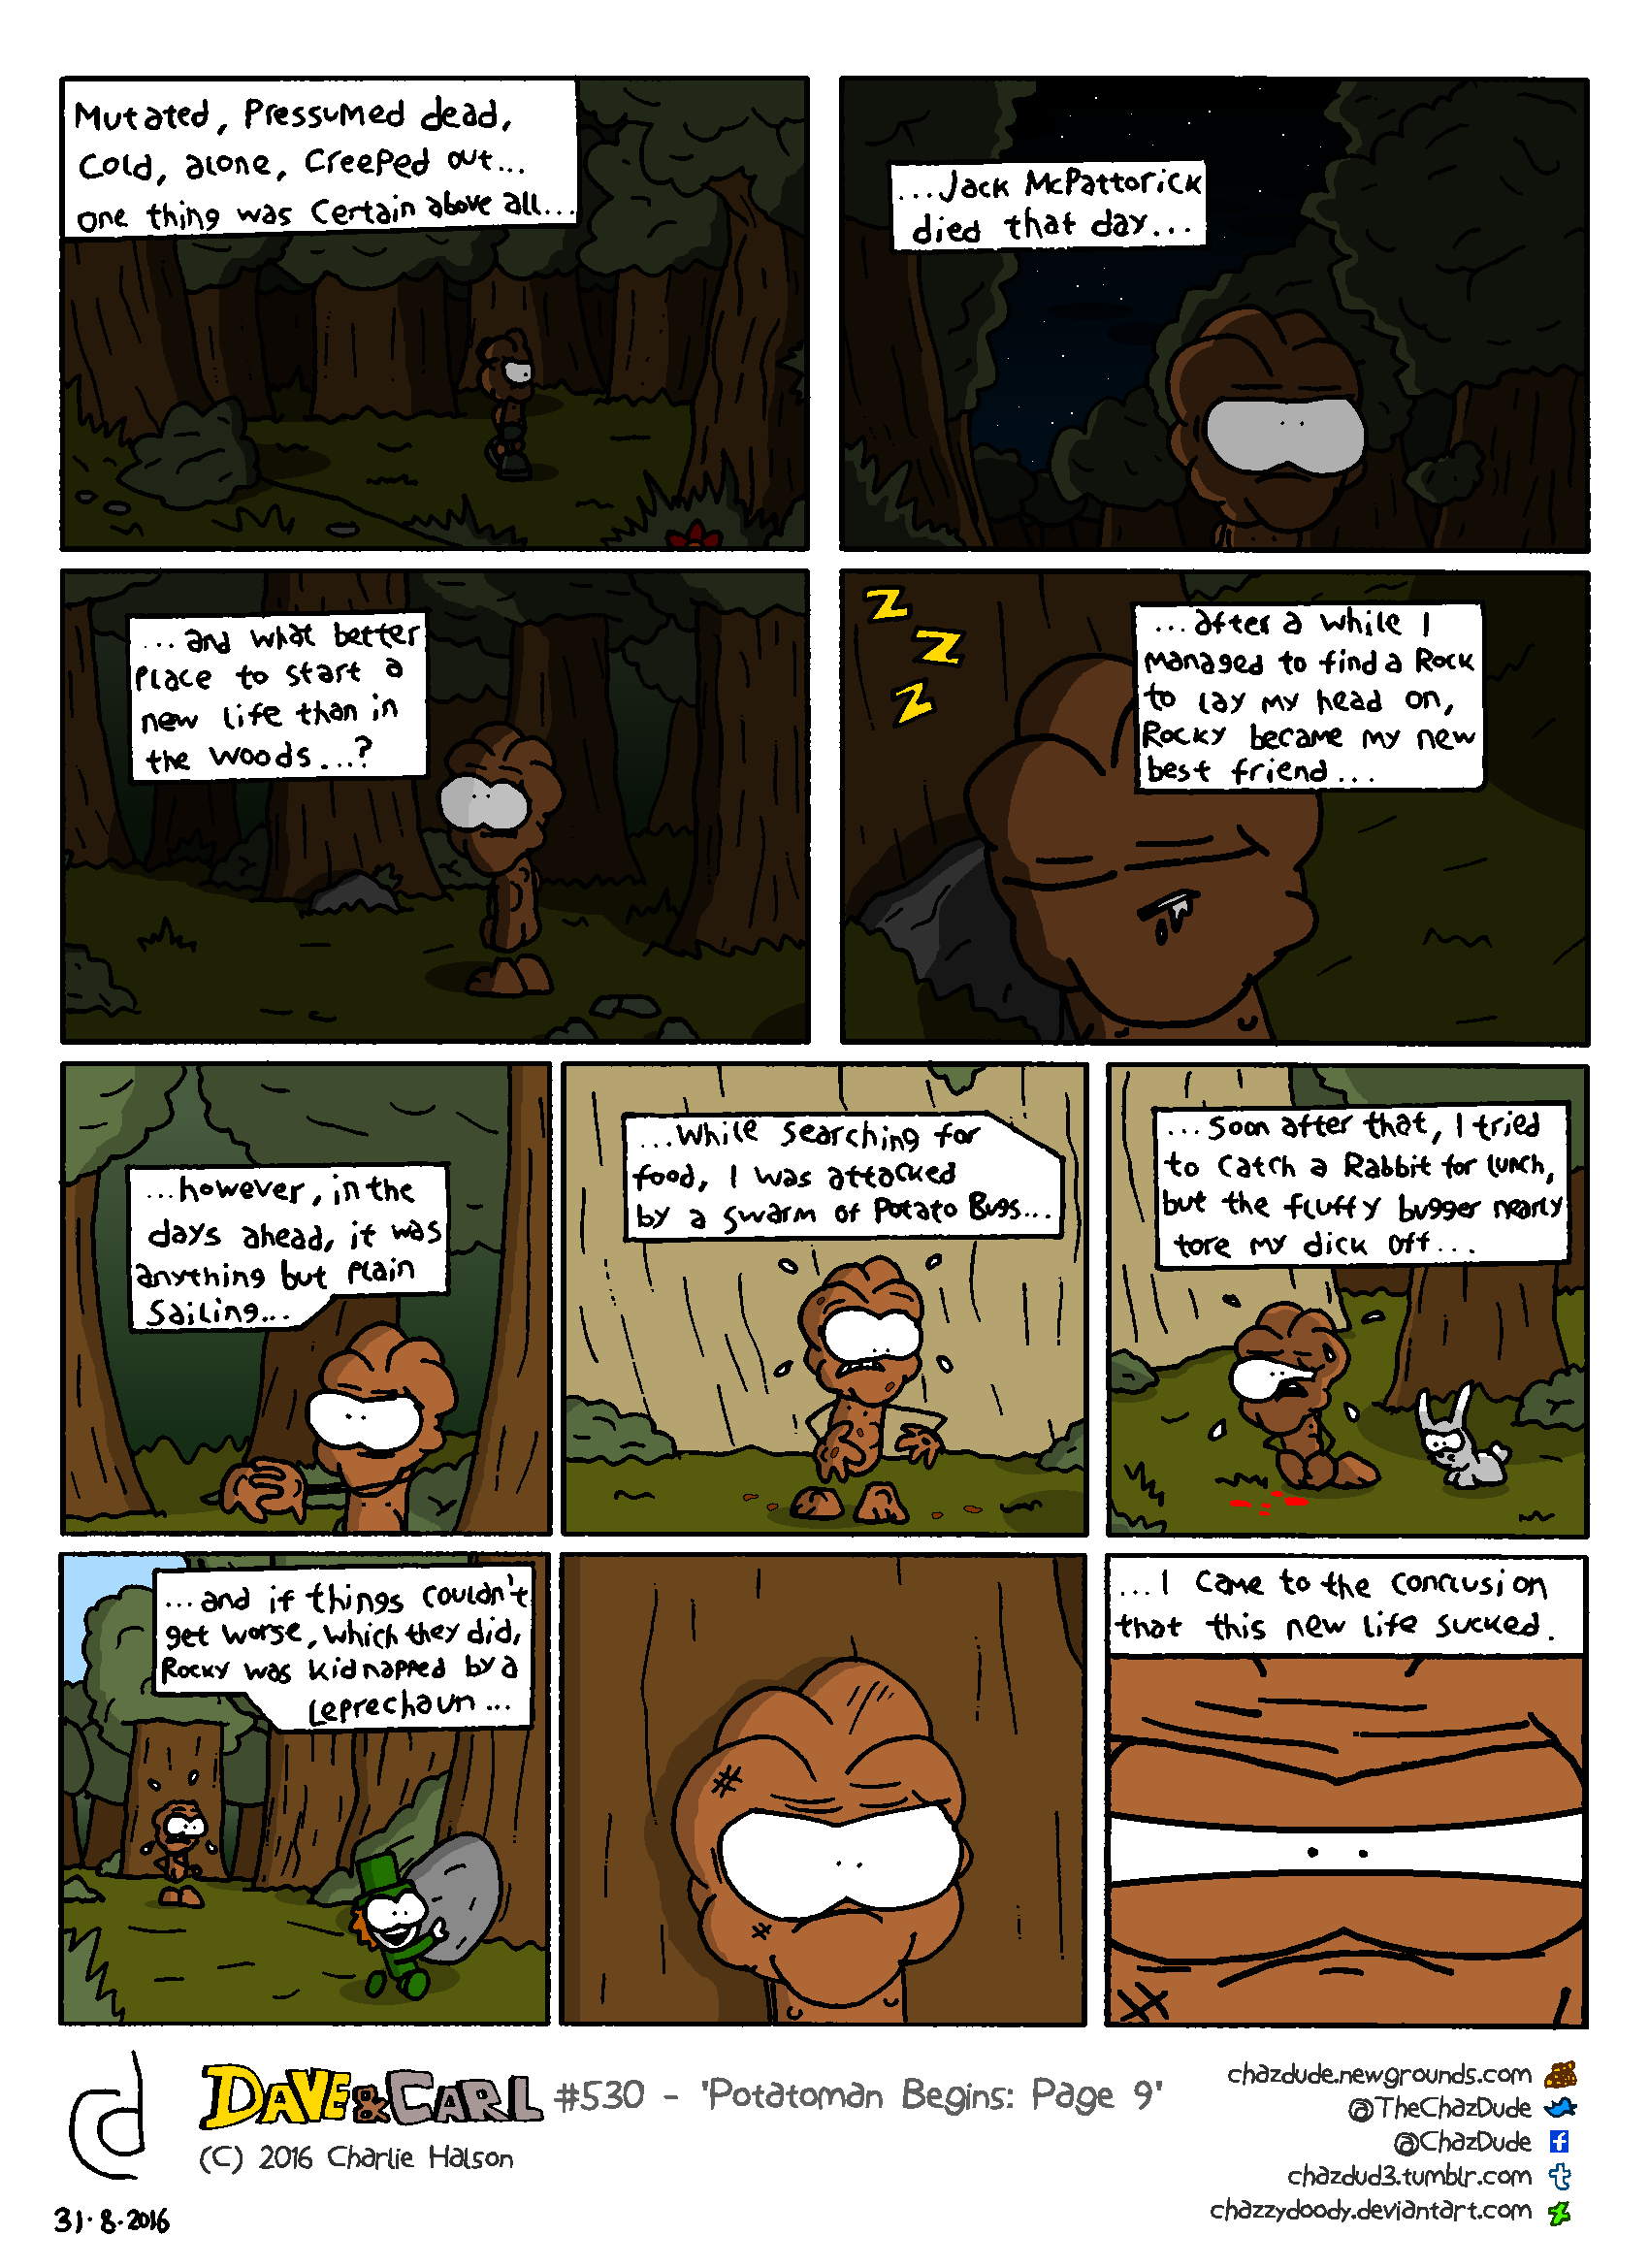 Potatoman Begins: Page 9